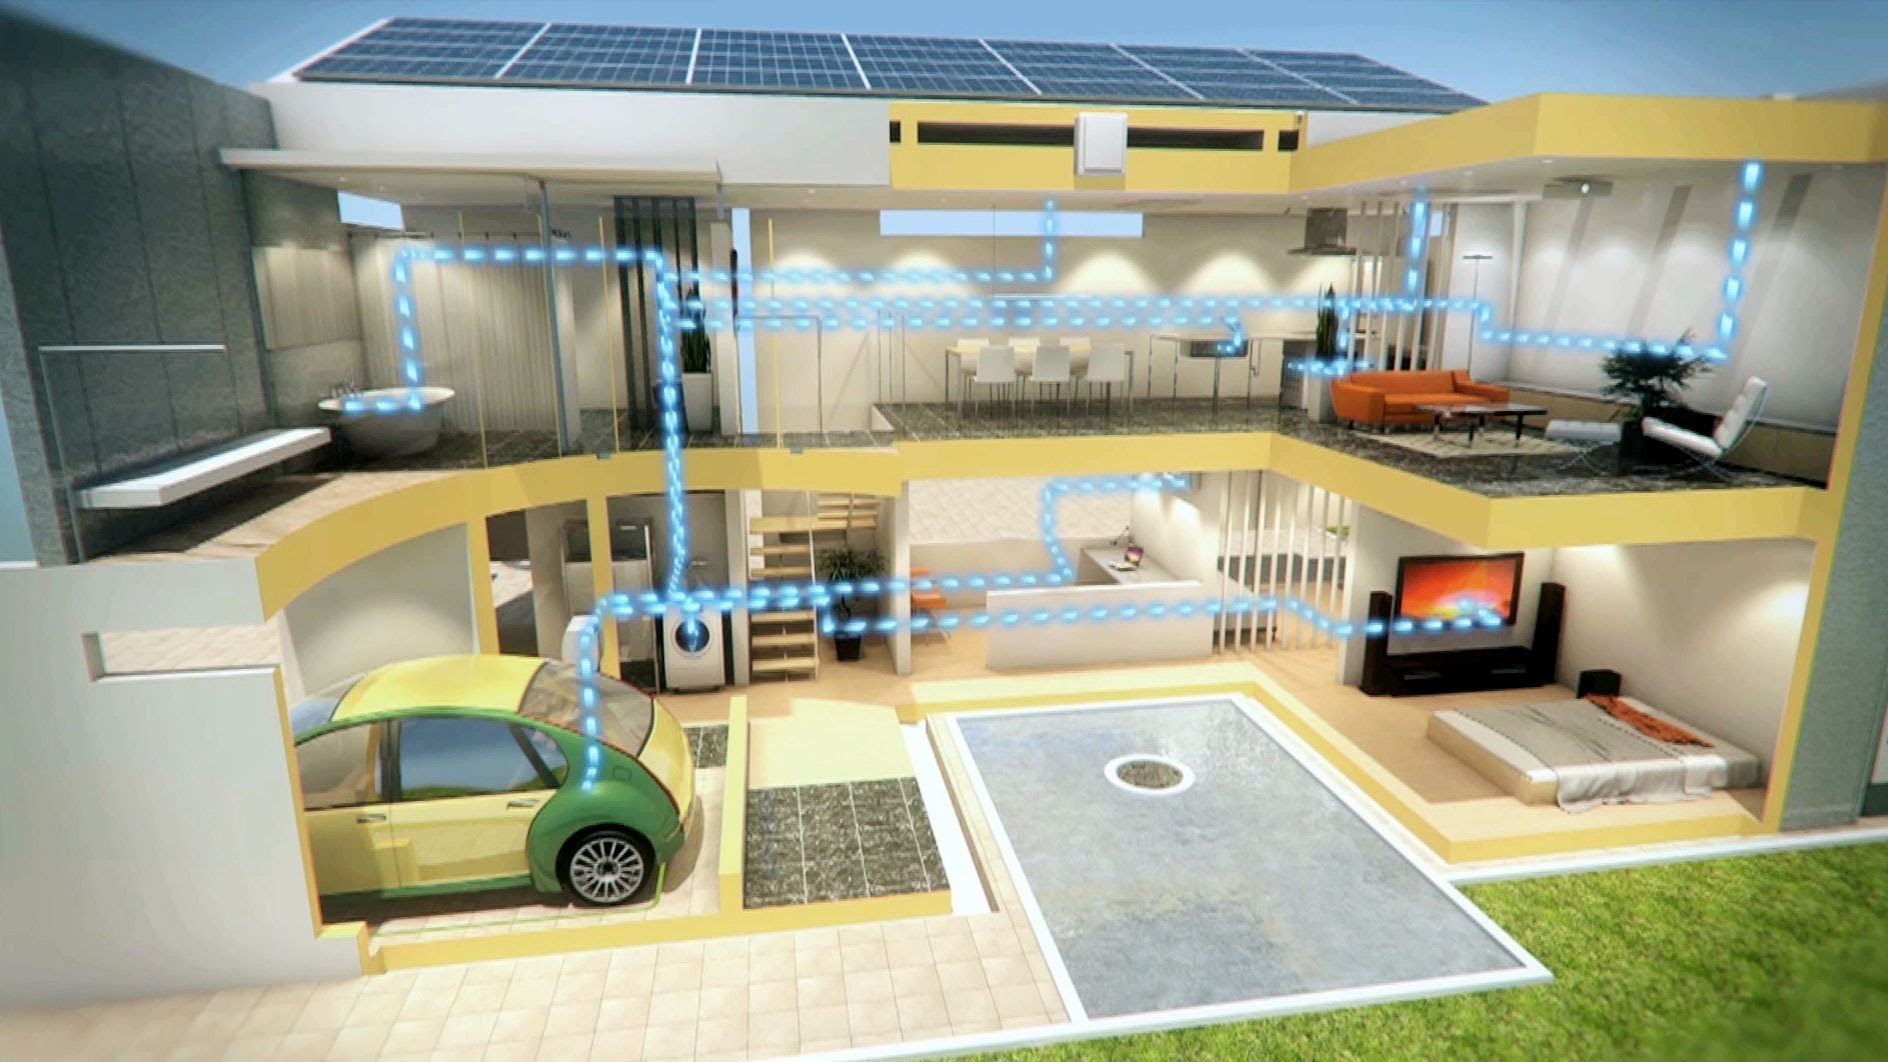 Japan Smart Green Homes On The Horizon Home Design Floor Plans Home Technology Smart Home Technology